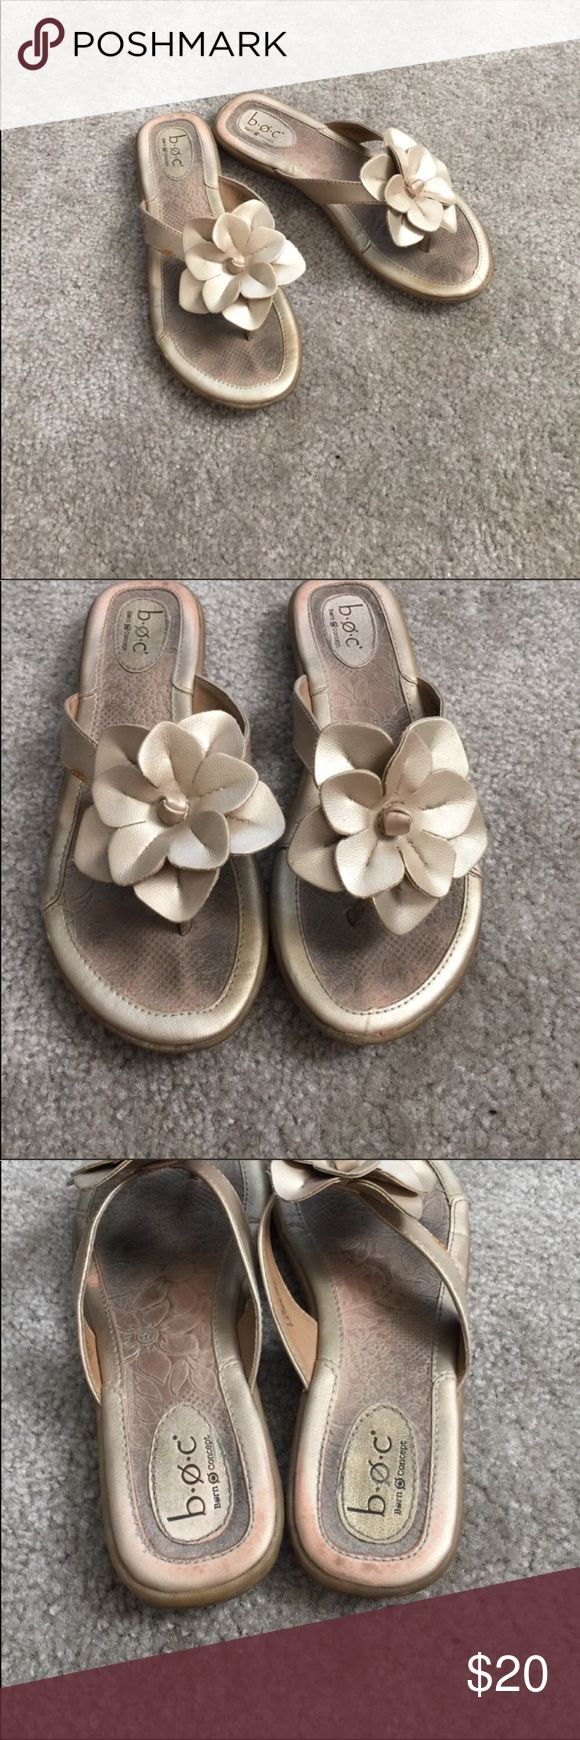 Born B.O.C. Gold flip flop sandals with flower Good used condition sandals from Born B.O.C. Signs of wear shown, not noticeable when wearing. Still have lot of life left! b.o.c. Shoes Sandals